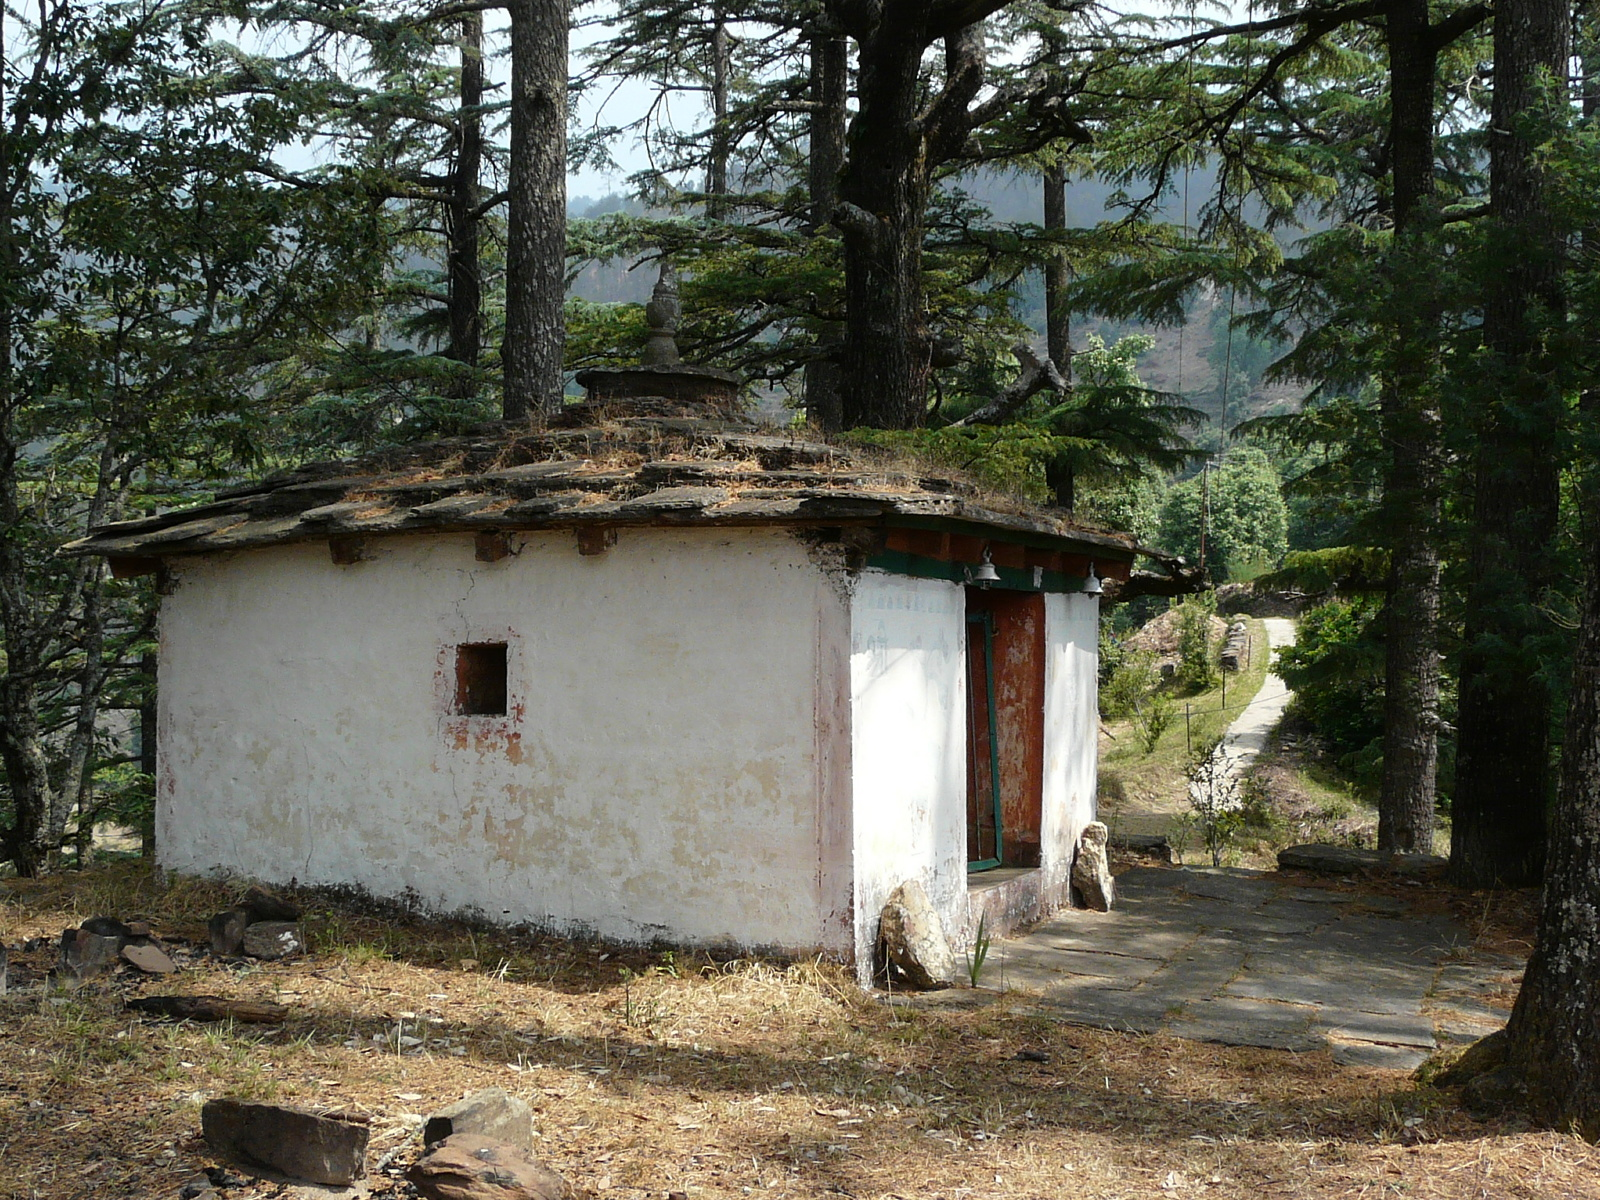 village-old-hut